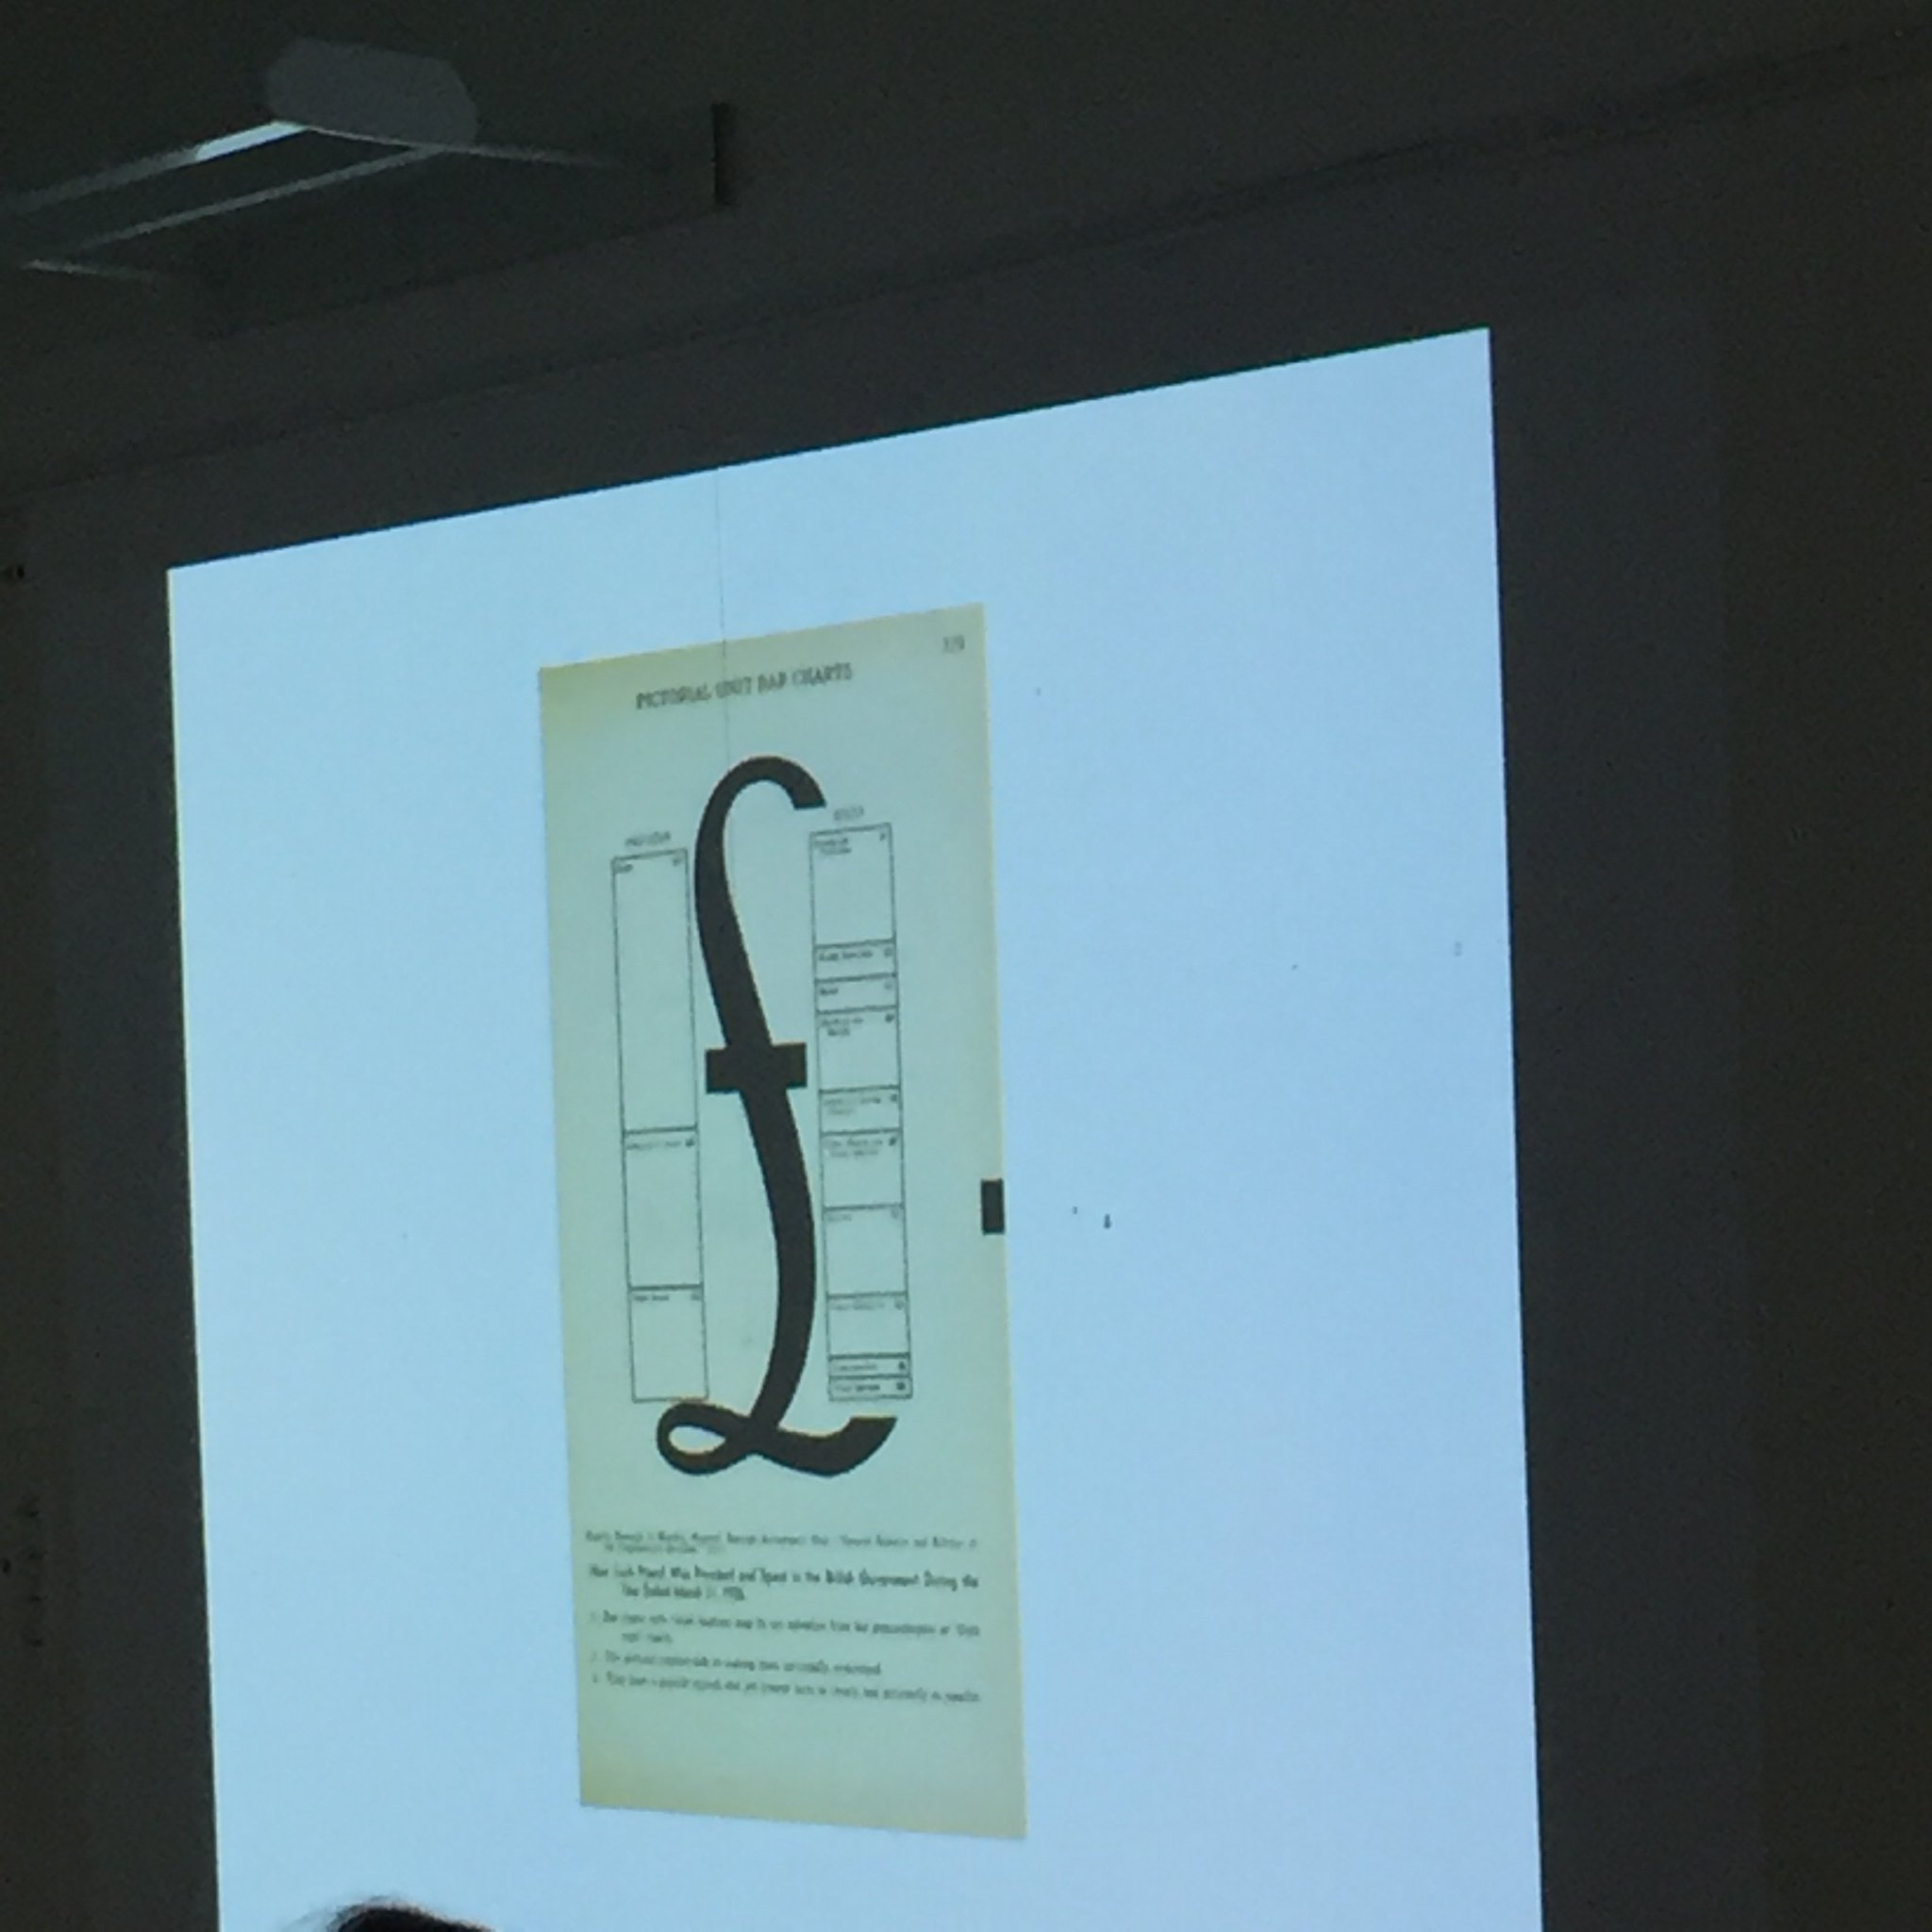 Diagramme en balance du compté de Reading, 1934 @fadebiaye #DesignJustice  /c @alicesavoie https://t.co/Bo5rYj8XlL